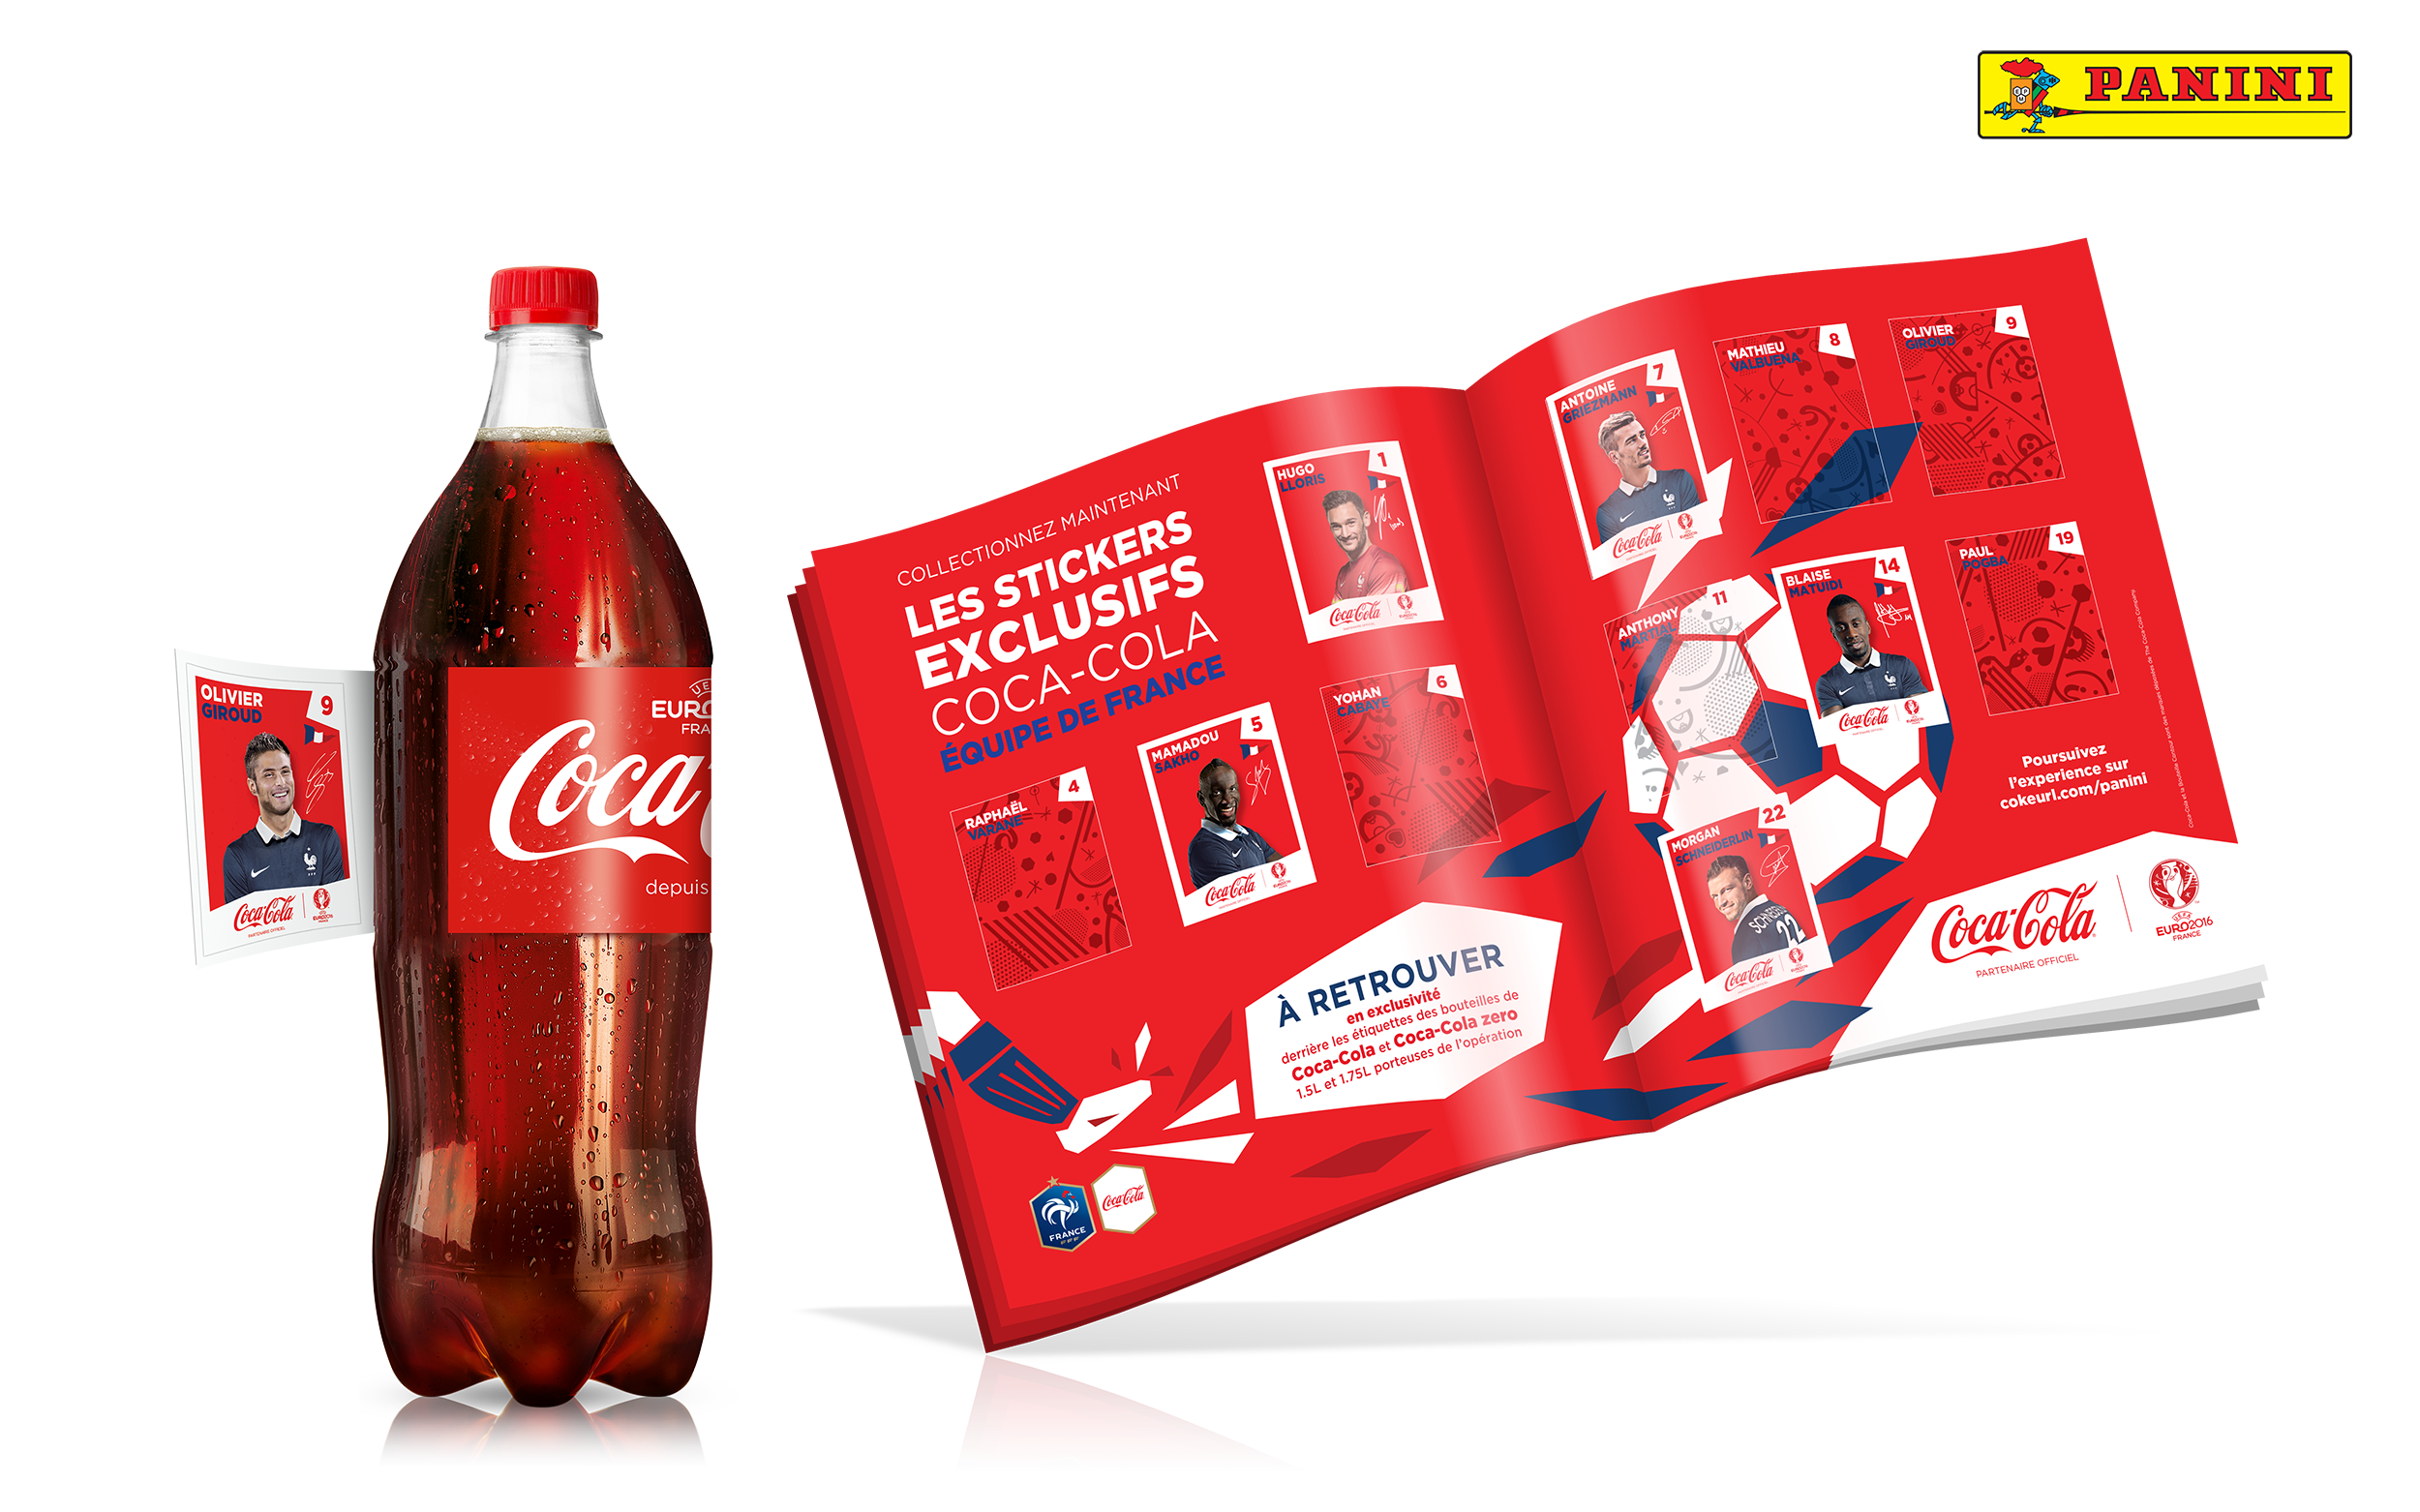 uefa euro 2016 comment coca cola va envahir le quotidien des fran ais dossier. Black Bedroom Furniture Sets. Home Design Ideas